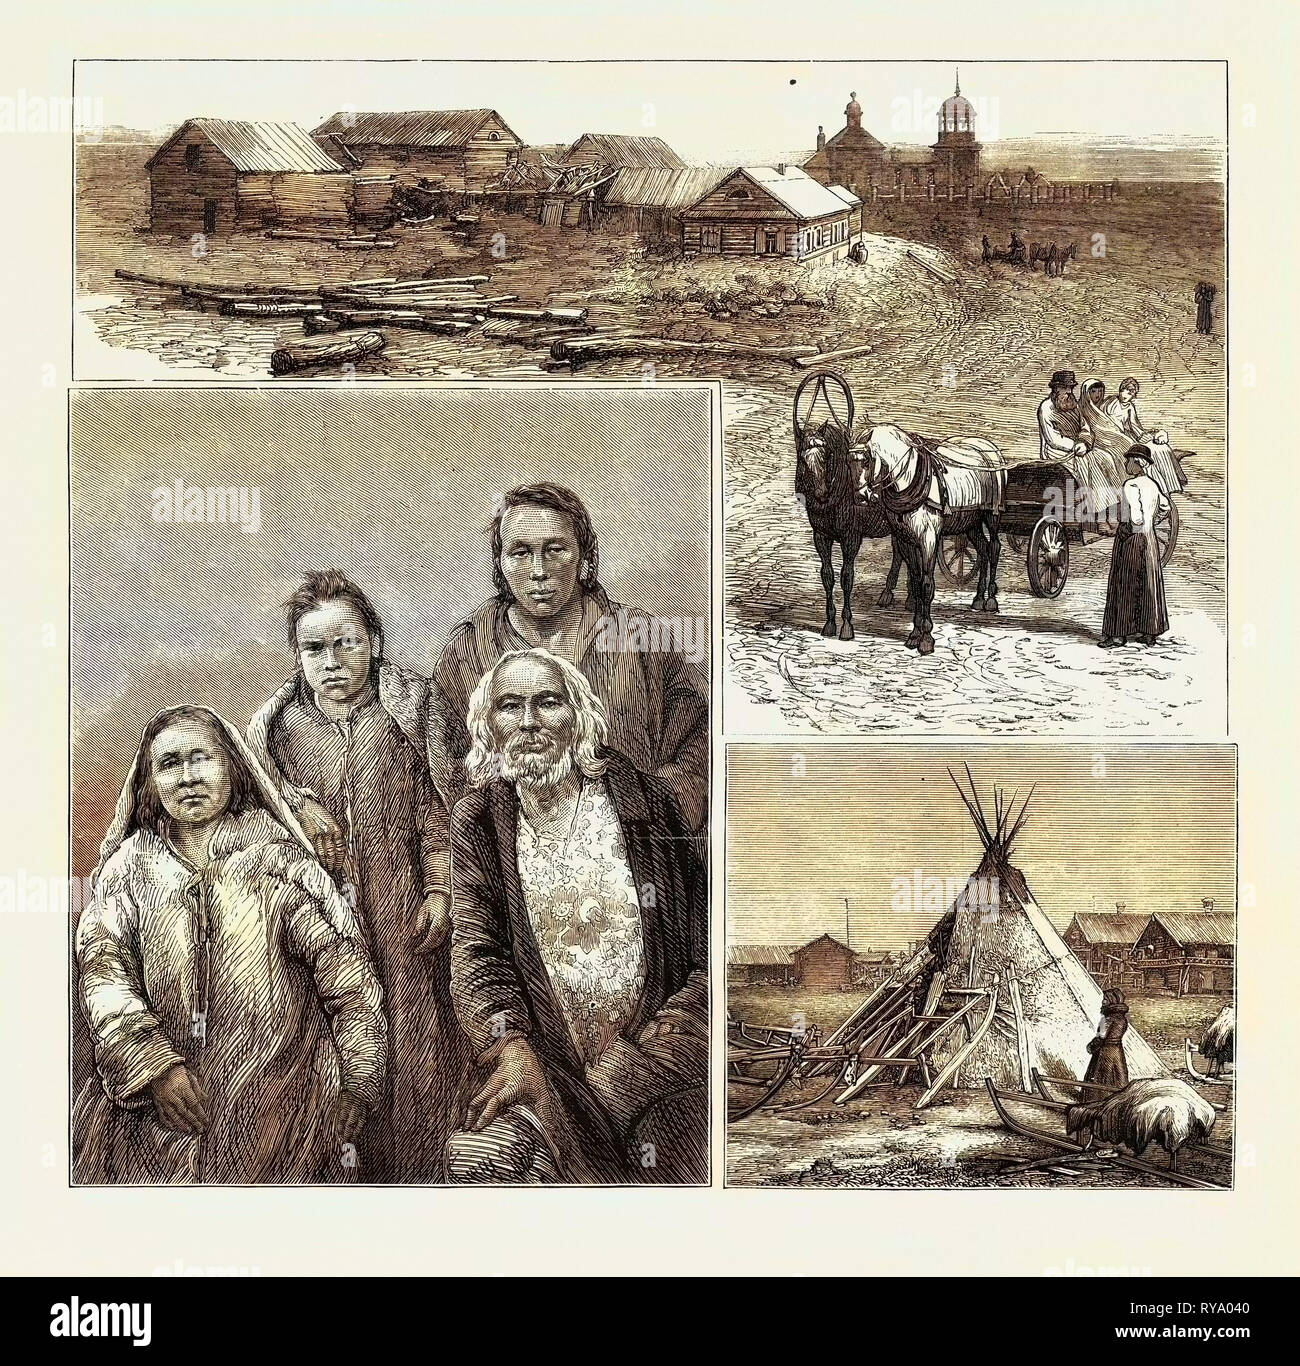 To Siberia by Sea, Captain Wiggins' Expedition: Town of Obdorsk on the Lower Obi, East Siberia, the King Patchka of the Samoiedes on the Obi and Three Natives, Tent and Sledges of the Expedition - Stock Image